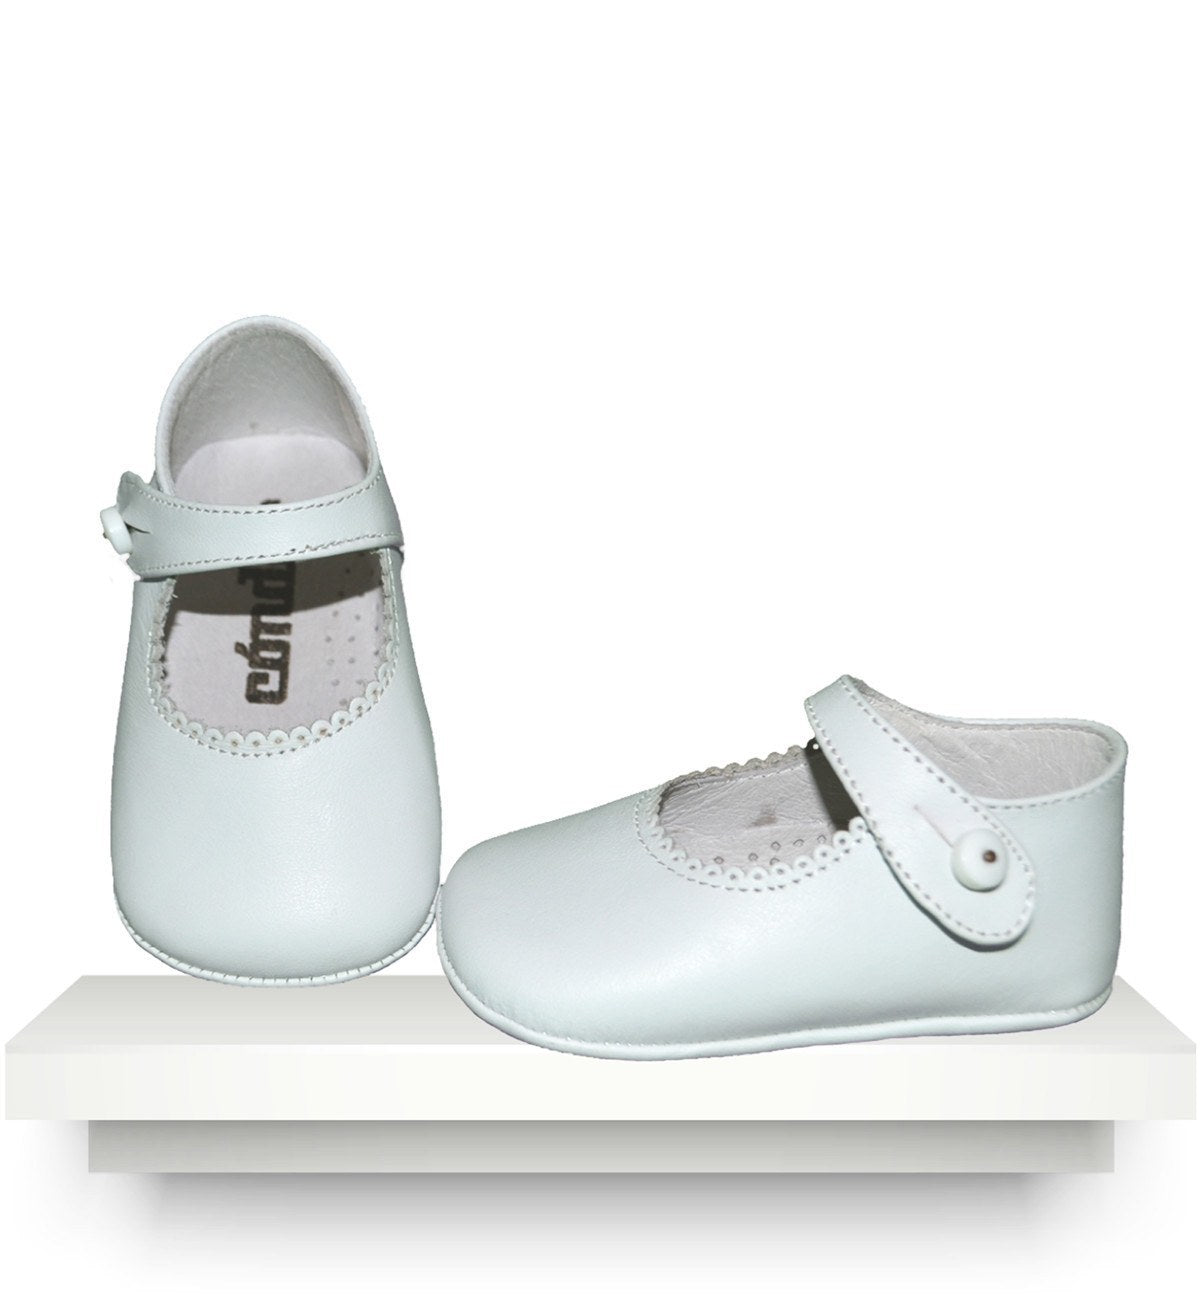 Spanish baby clothes | baby Shoes | White leather shoes |babymaC  - 1